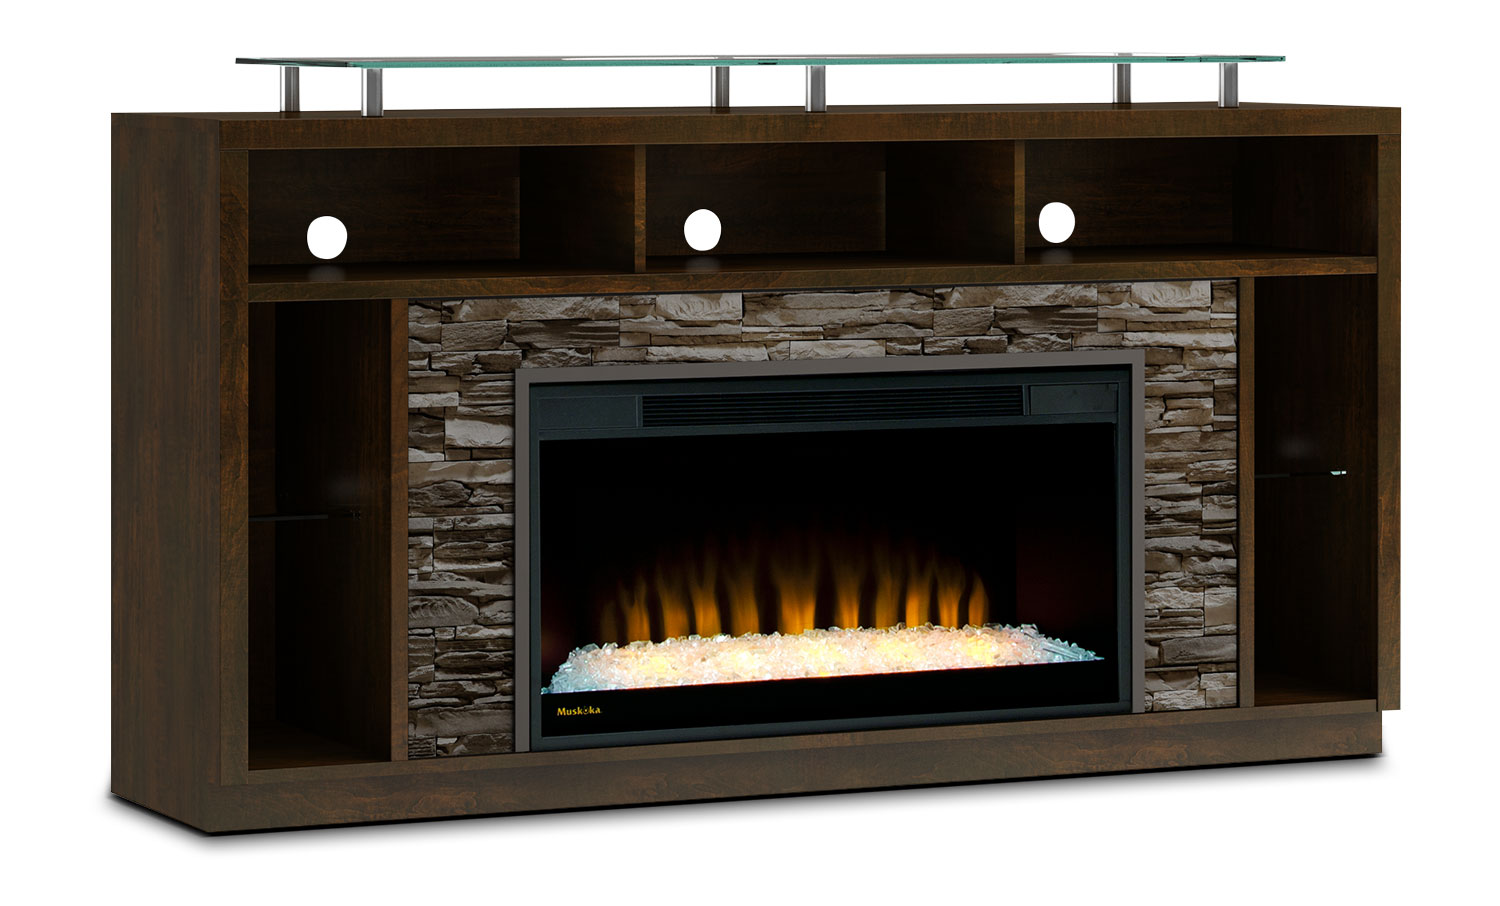 arlington 71 tv stand with glass ember firebox bordeaux